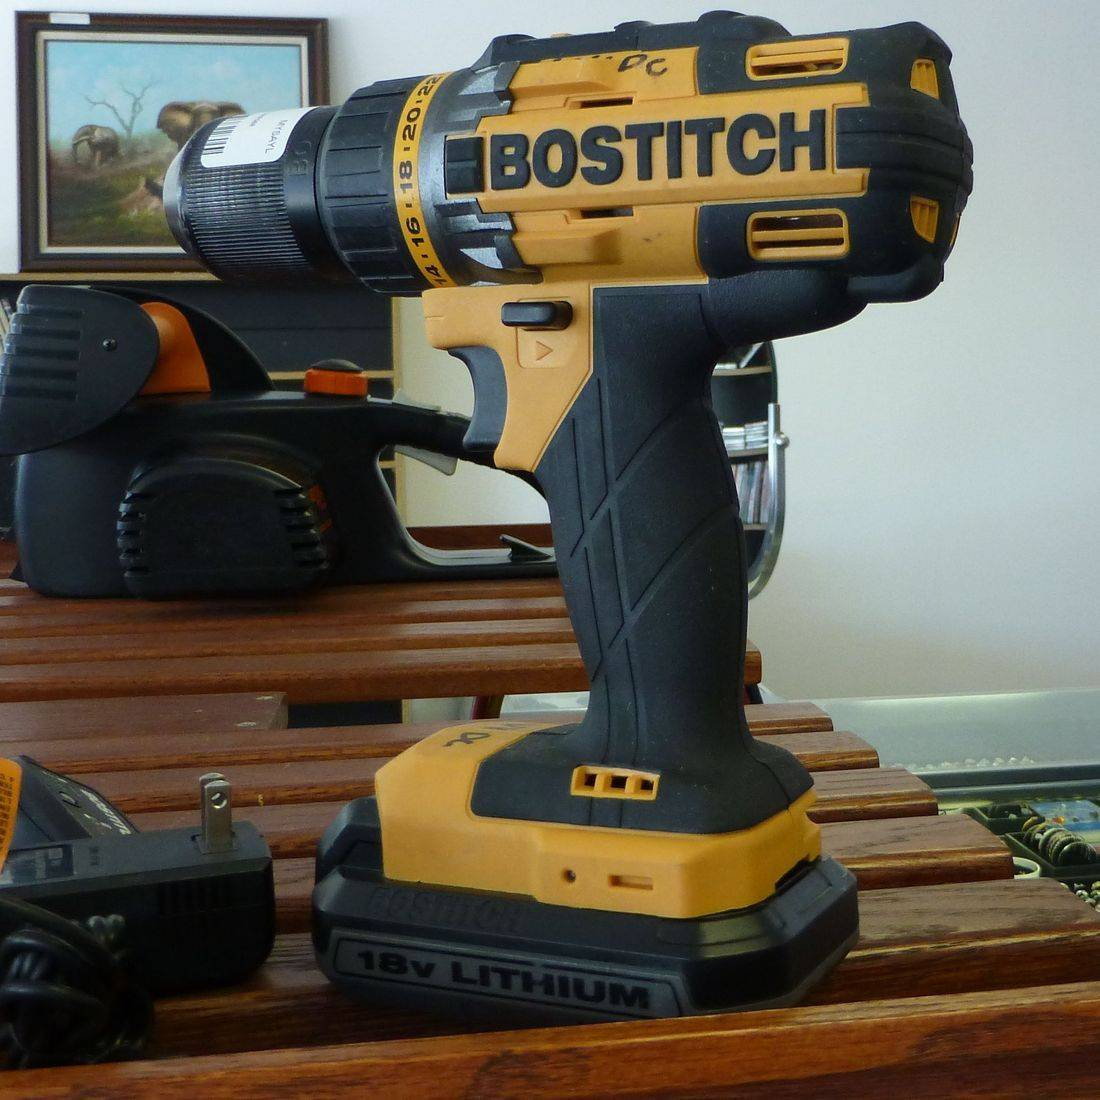 Yellow And Black Bostitch Power Drill On A Brown Shelf